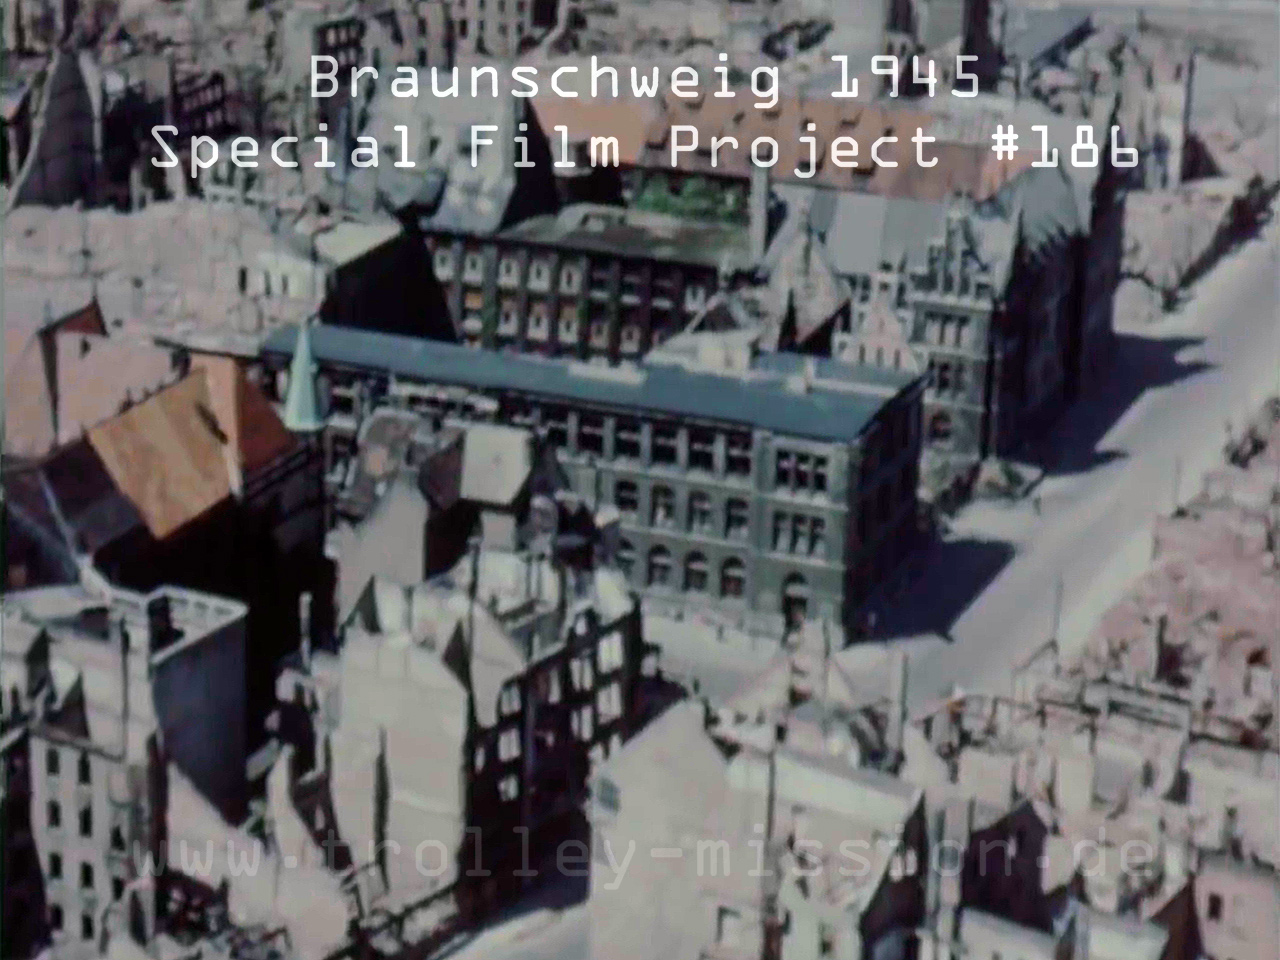 Low level flight video showing the destruction of Brunswick (Braunschweig), Germany, at the end of the European War (Second World War) 1945